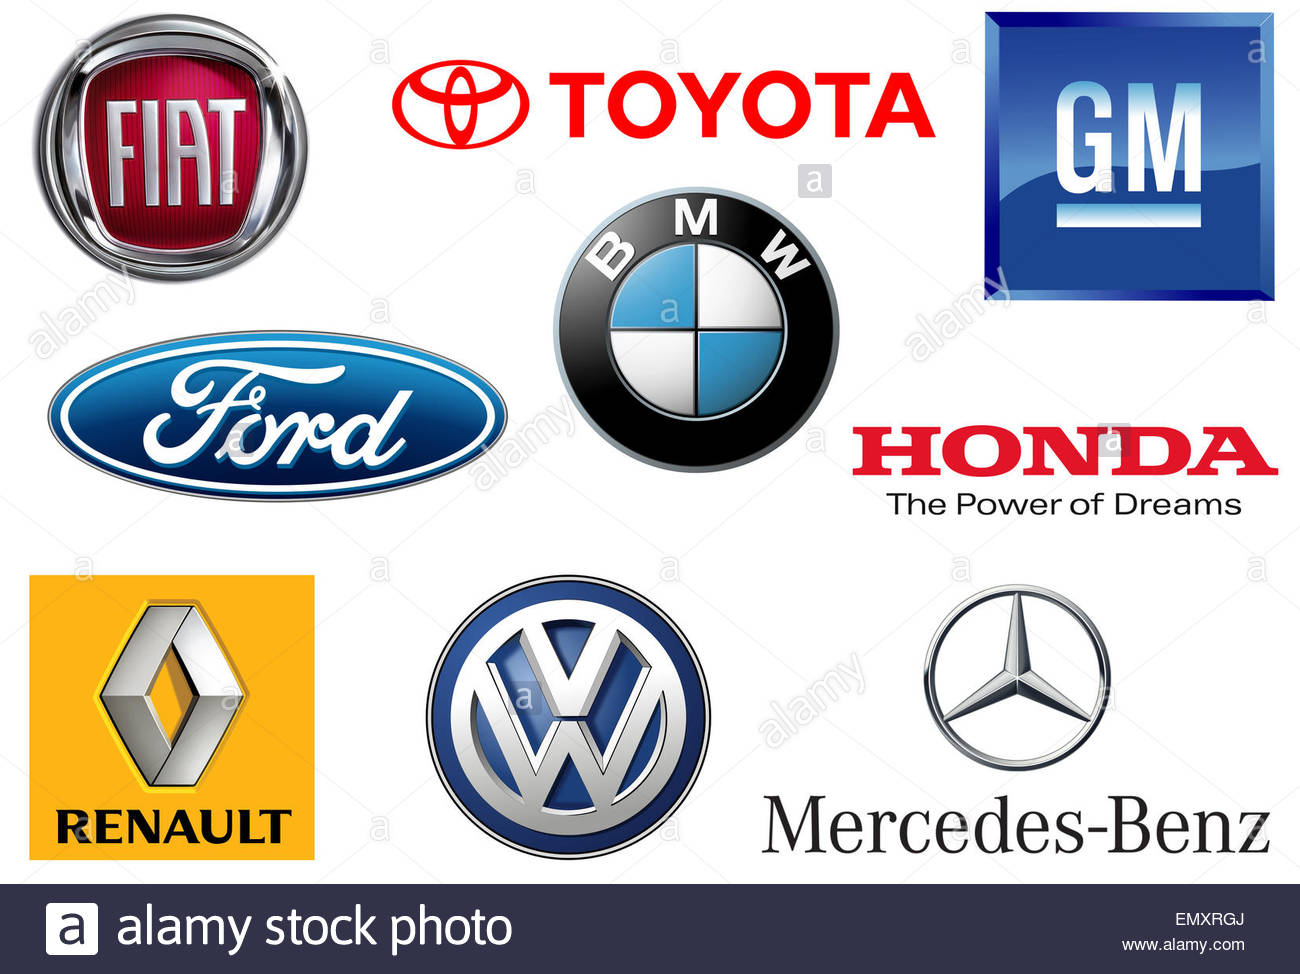 Toyota Volkswagen Gm General Motors Ford Bmw Mercedes Daimler Renault Stock Photo 81723842 Alamy